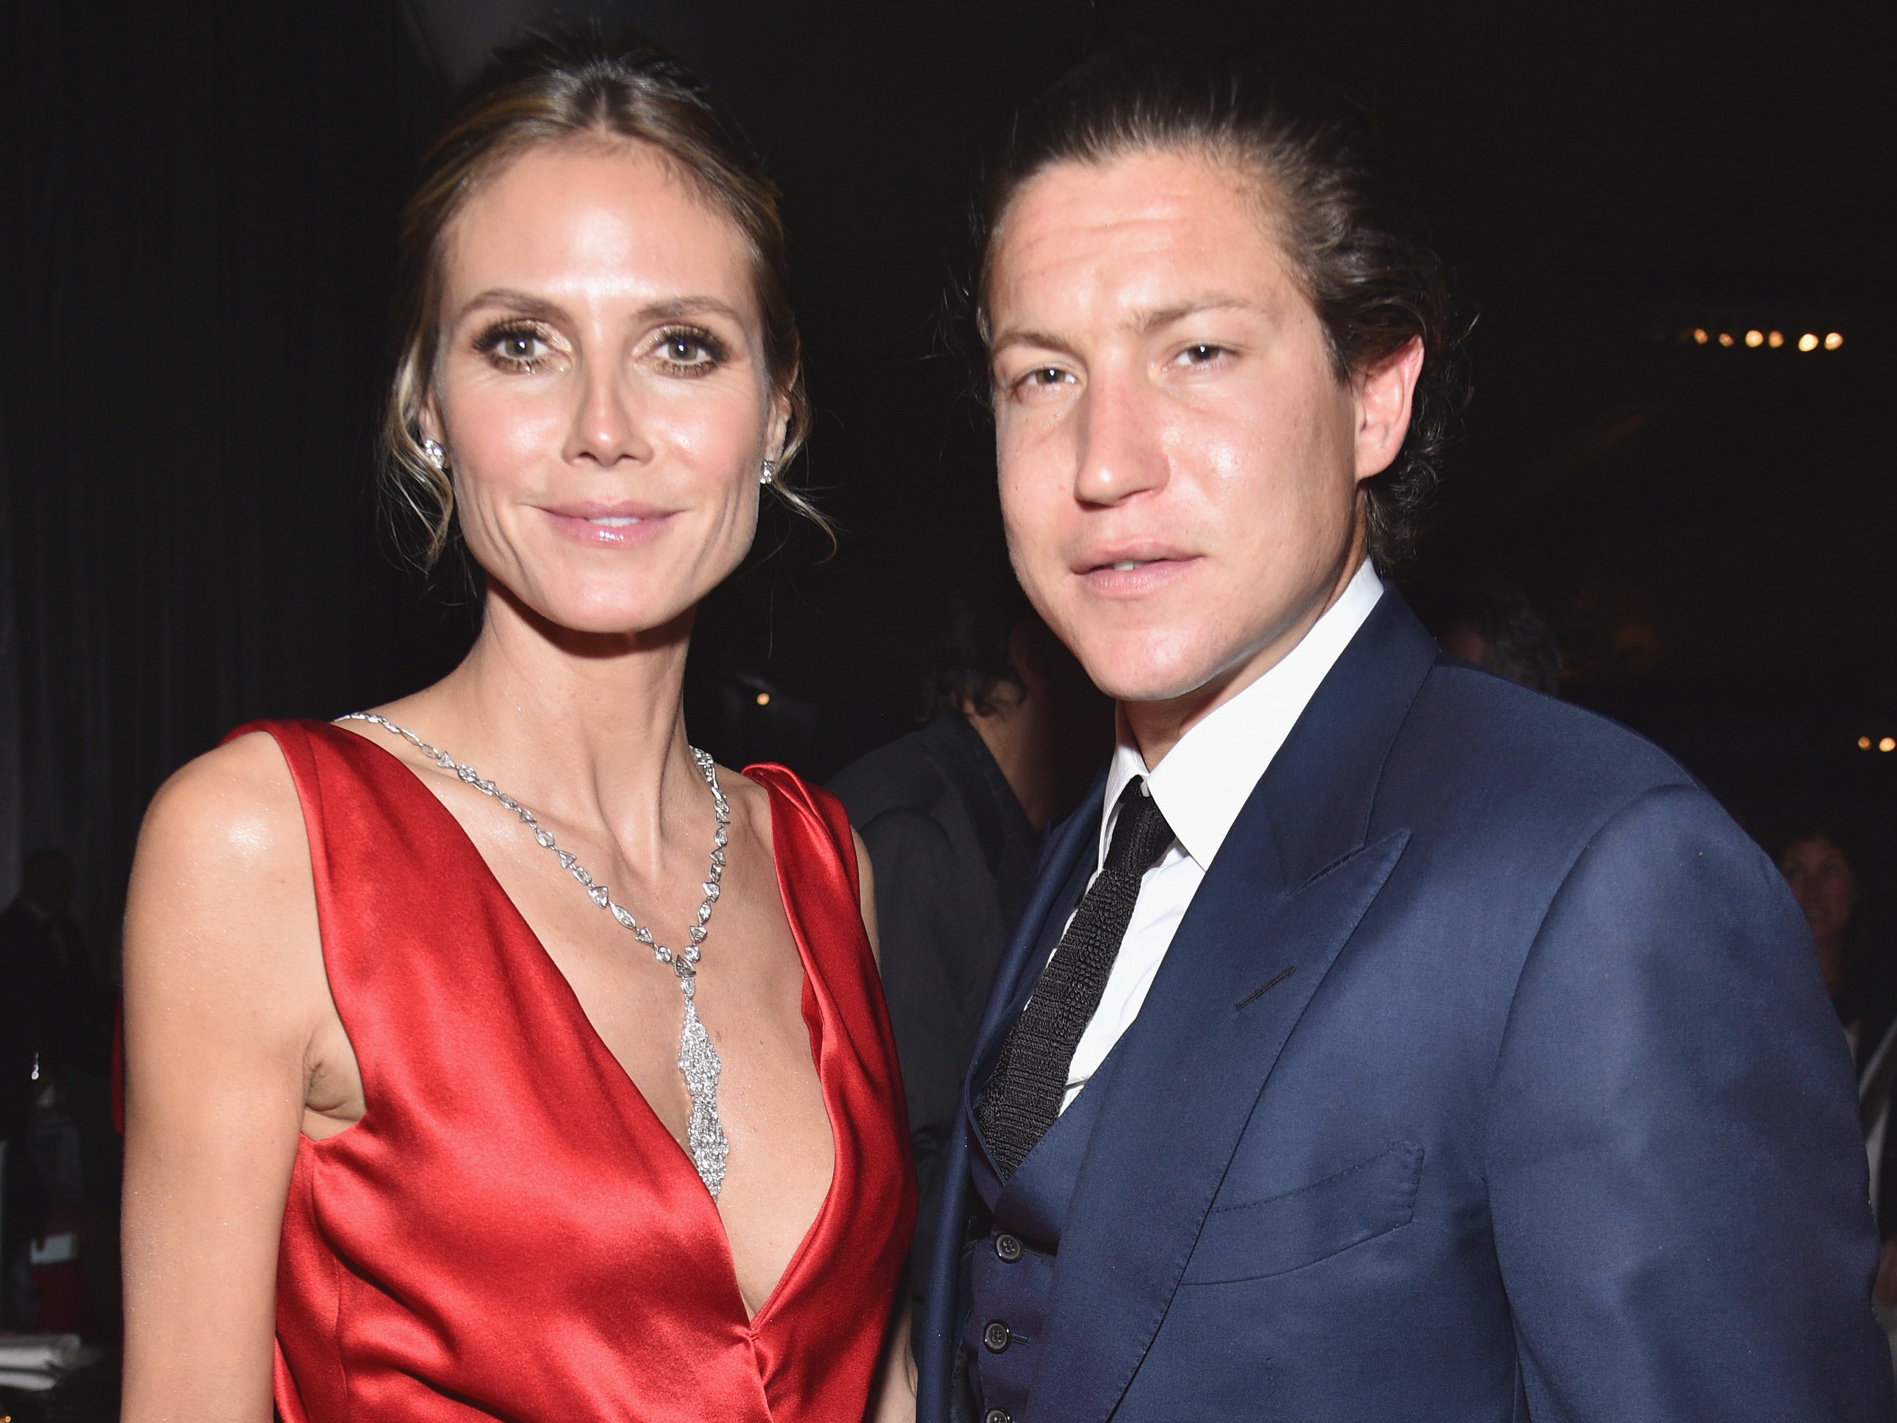 Heidi Klum Vito Schnabel Break Up